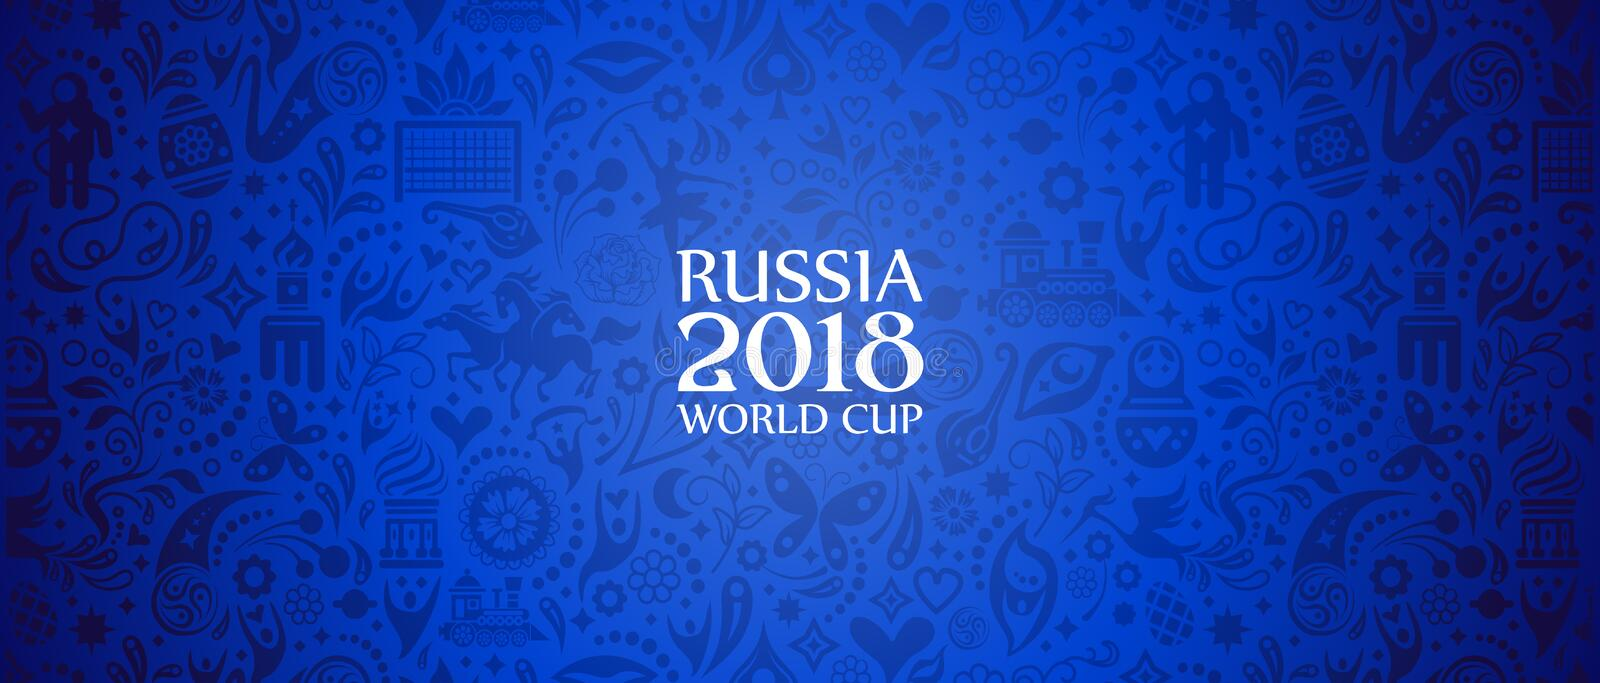 Russia 2018 World Cup banner. Illustration of an unofficial Russia Football World Cup 2018 banner background in a blue Russian themed pattern with white royalty free illustration